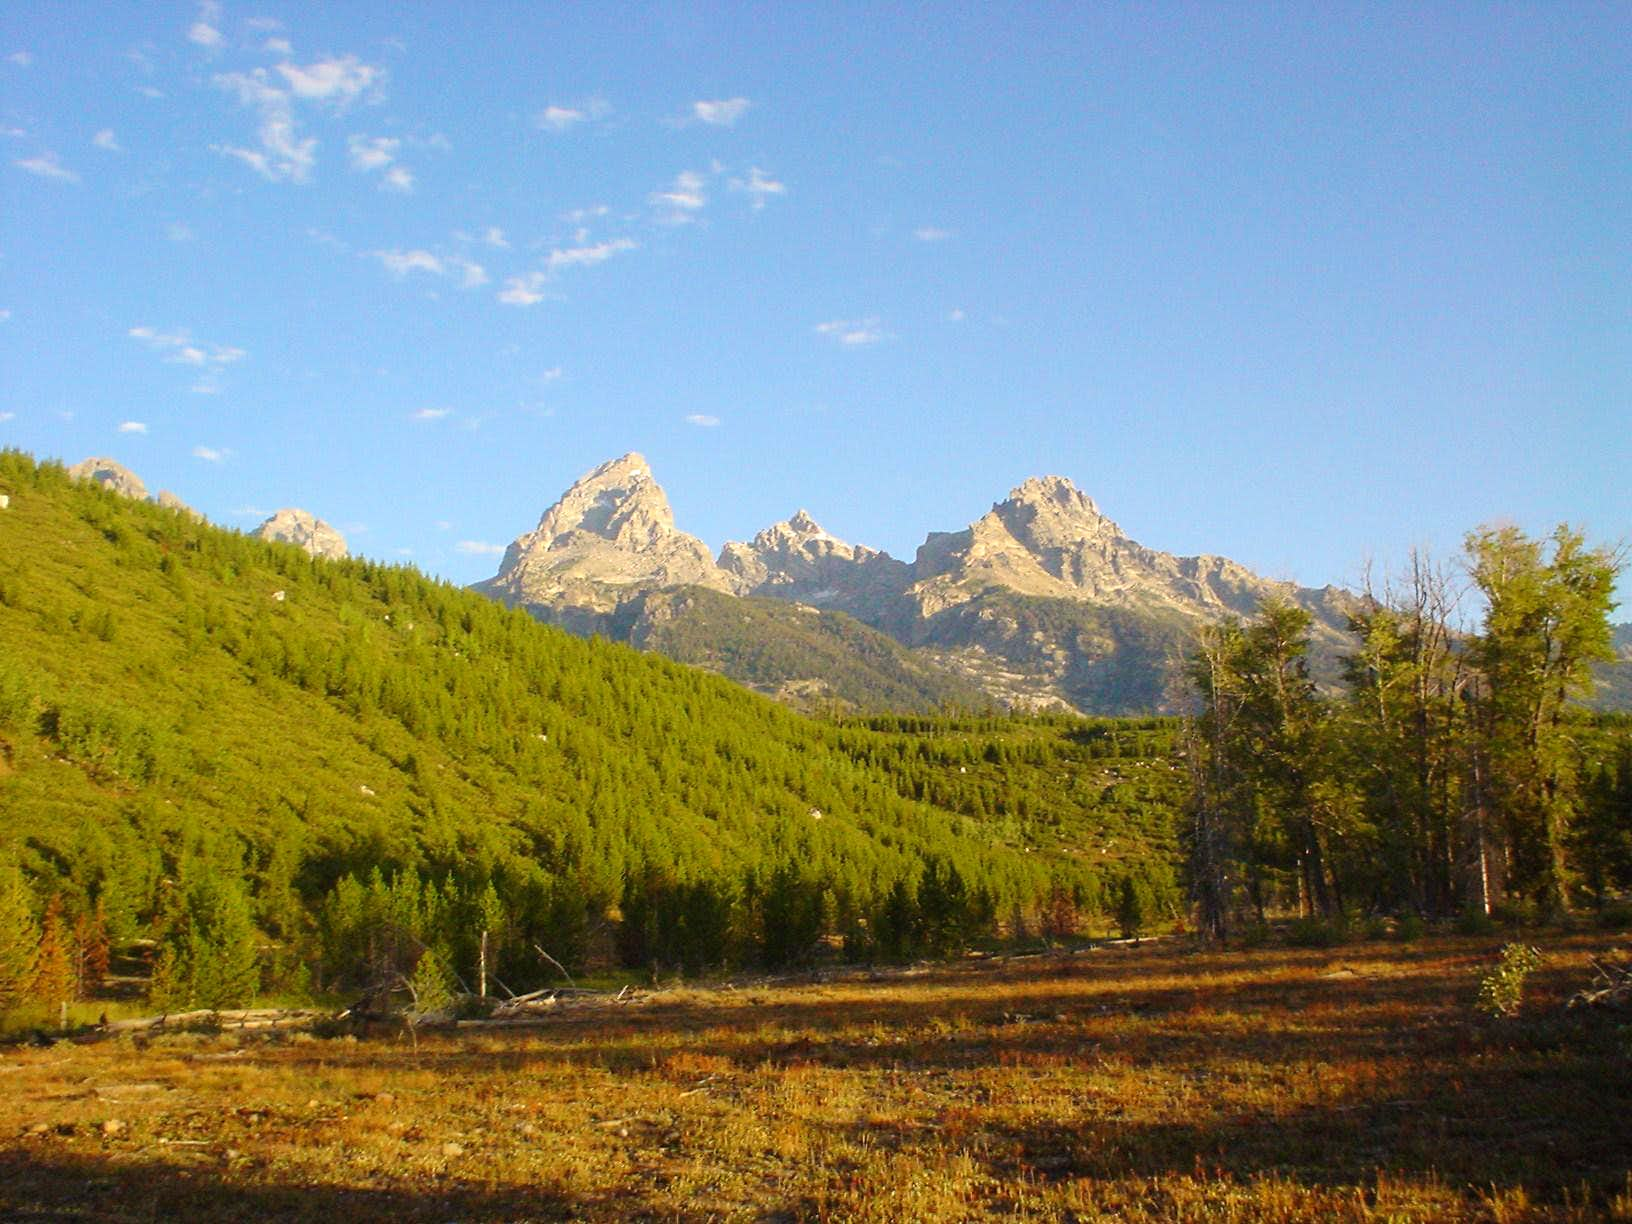 Grand Teton via Owen Spalding: A Complete Trip Report